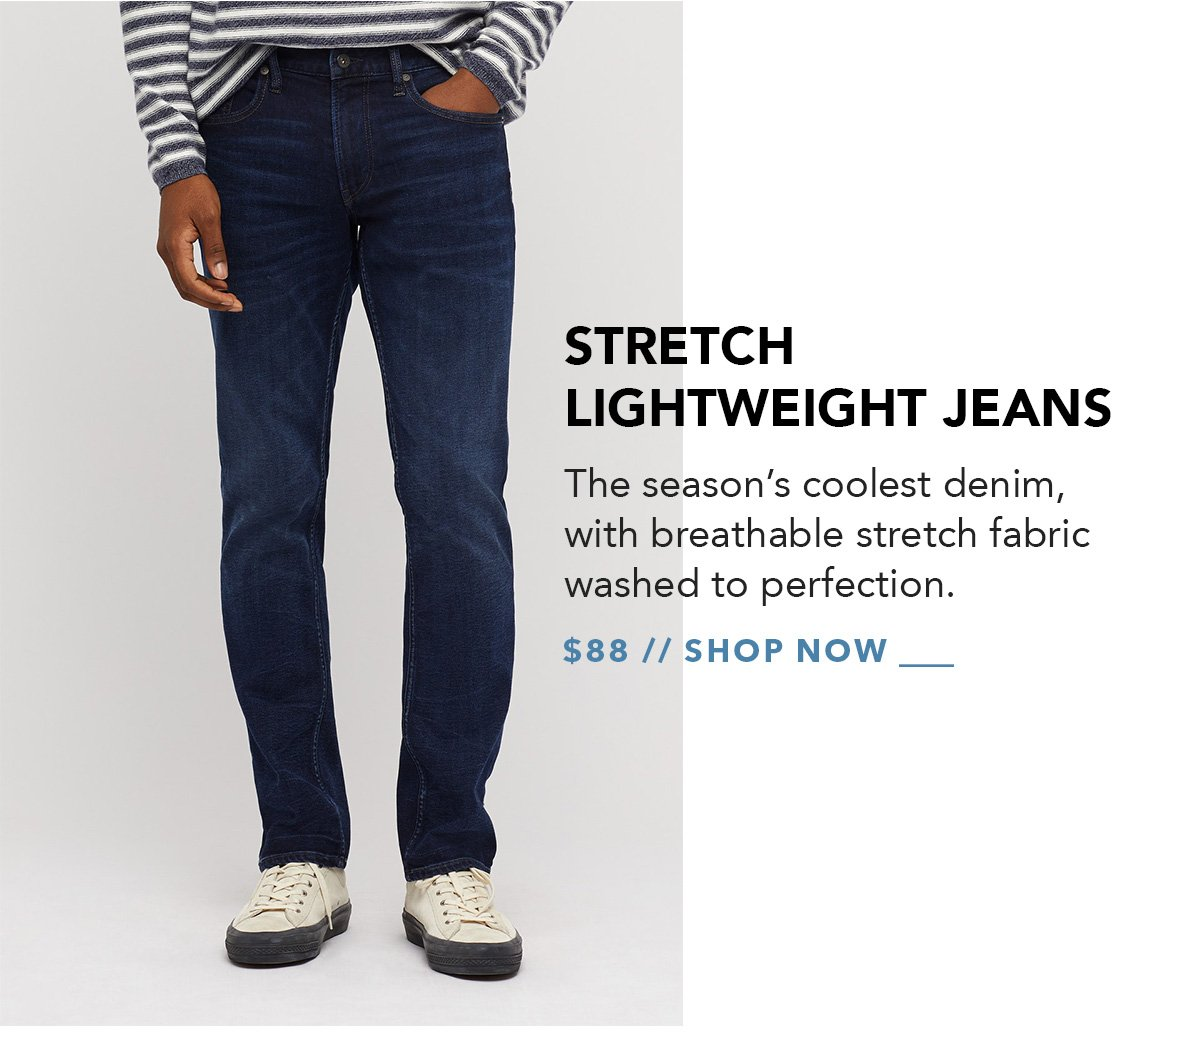 Stretch Lightweight Jean: The season's coolest denim, with breathable stretch fabric washed to perfection. Available in up to 3 fits and 7 colors.